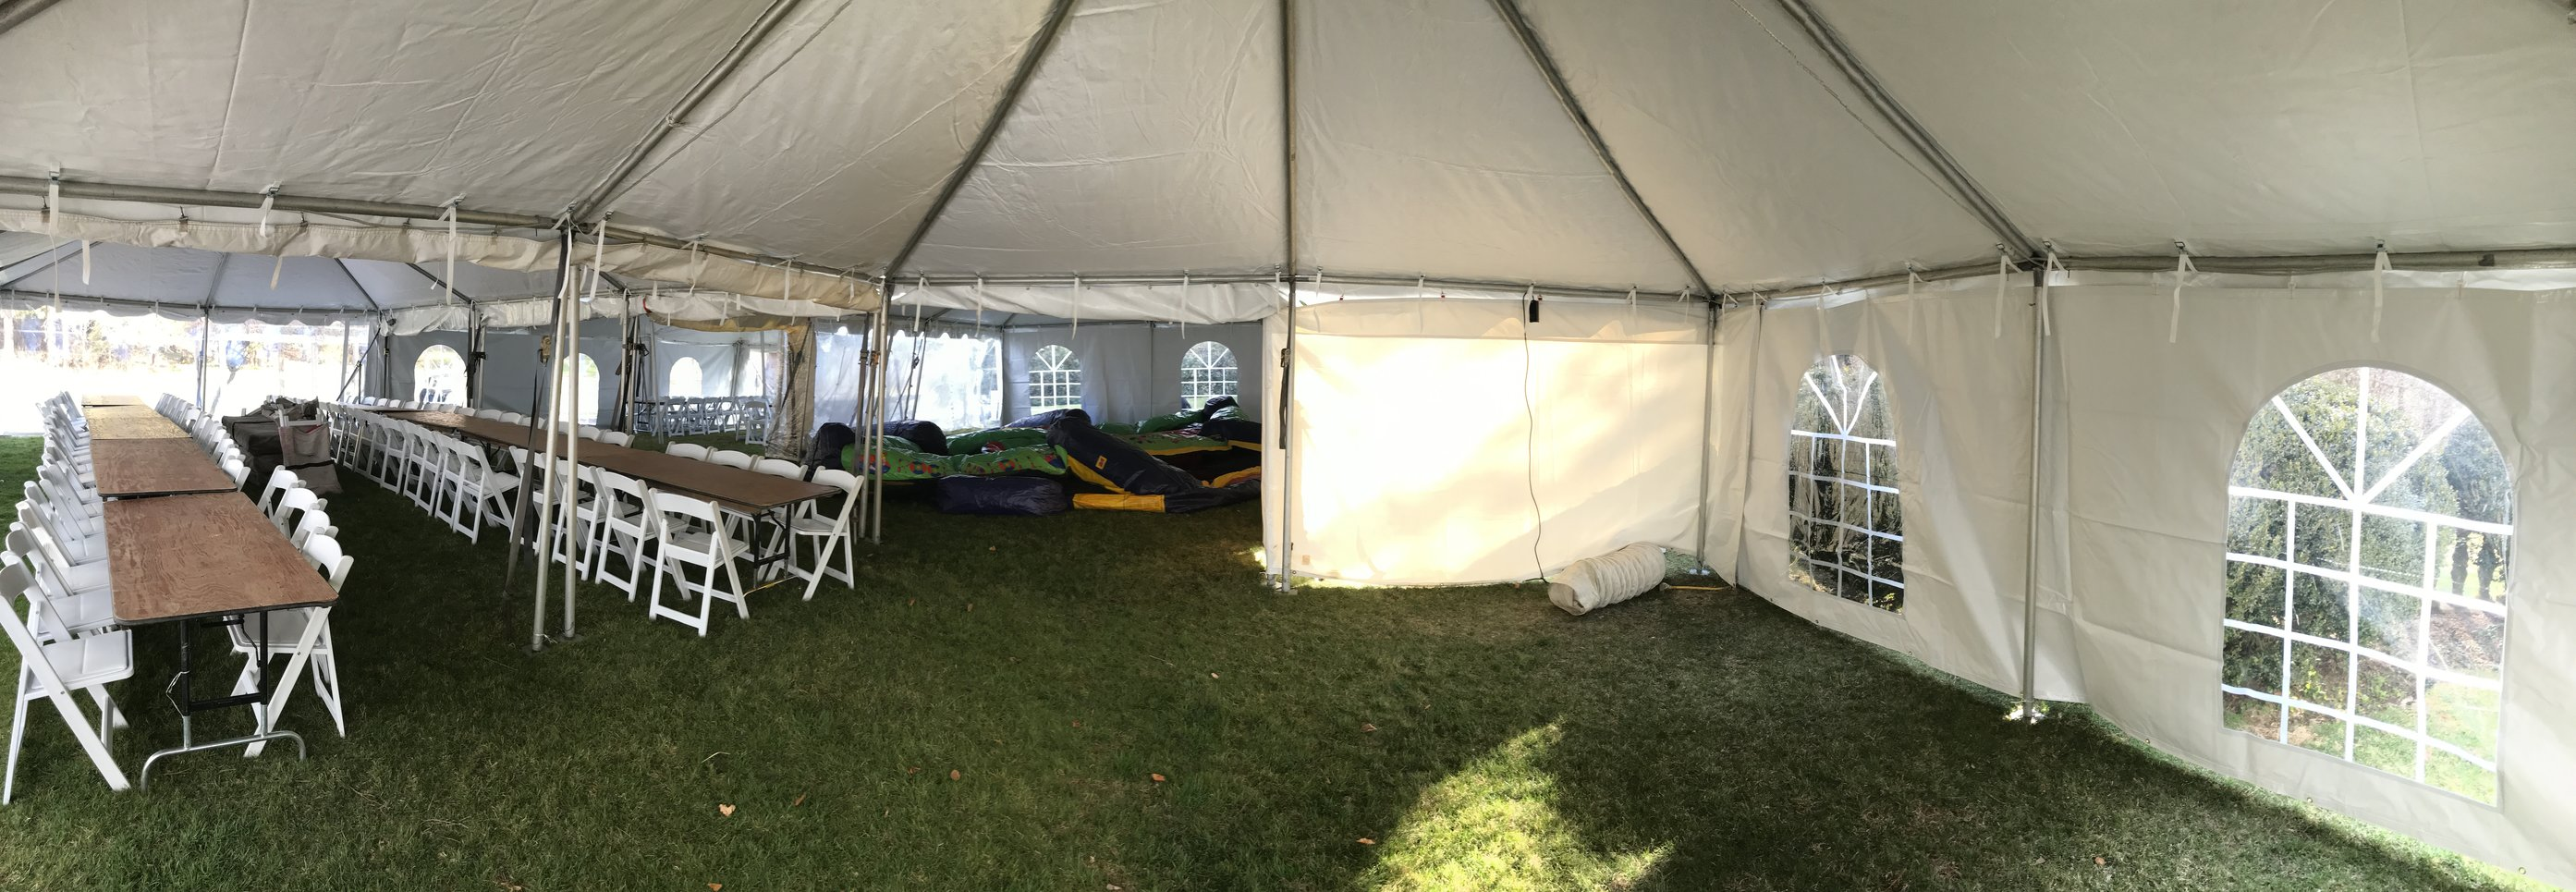 Large Heated Party Tent Rentals   New England Bounce About